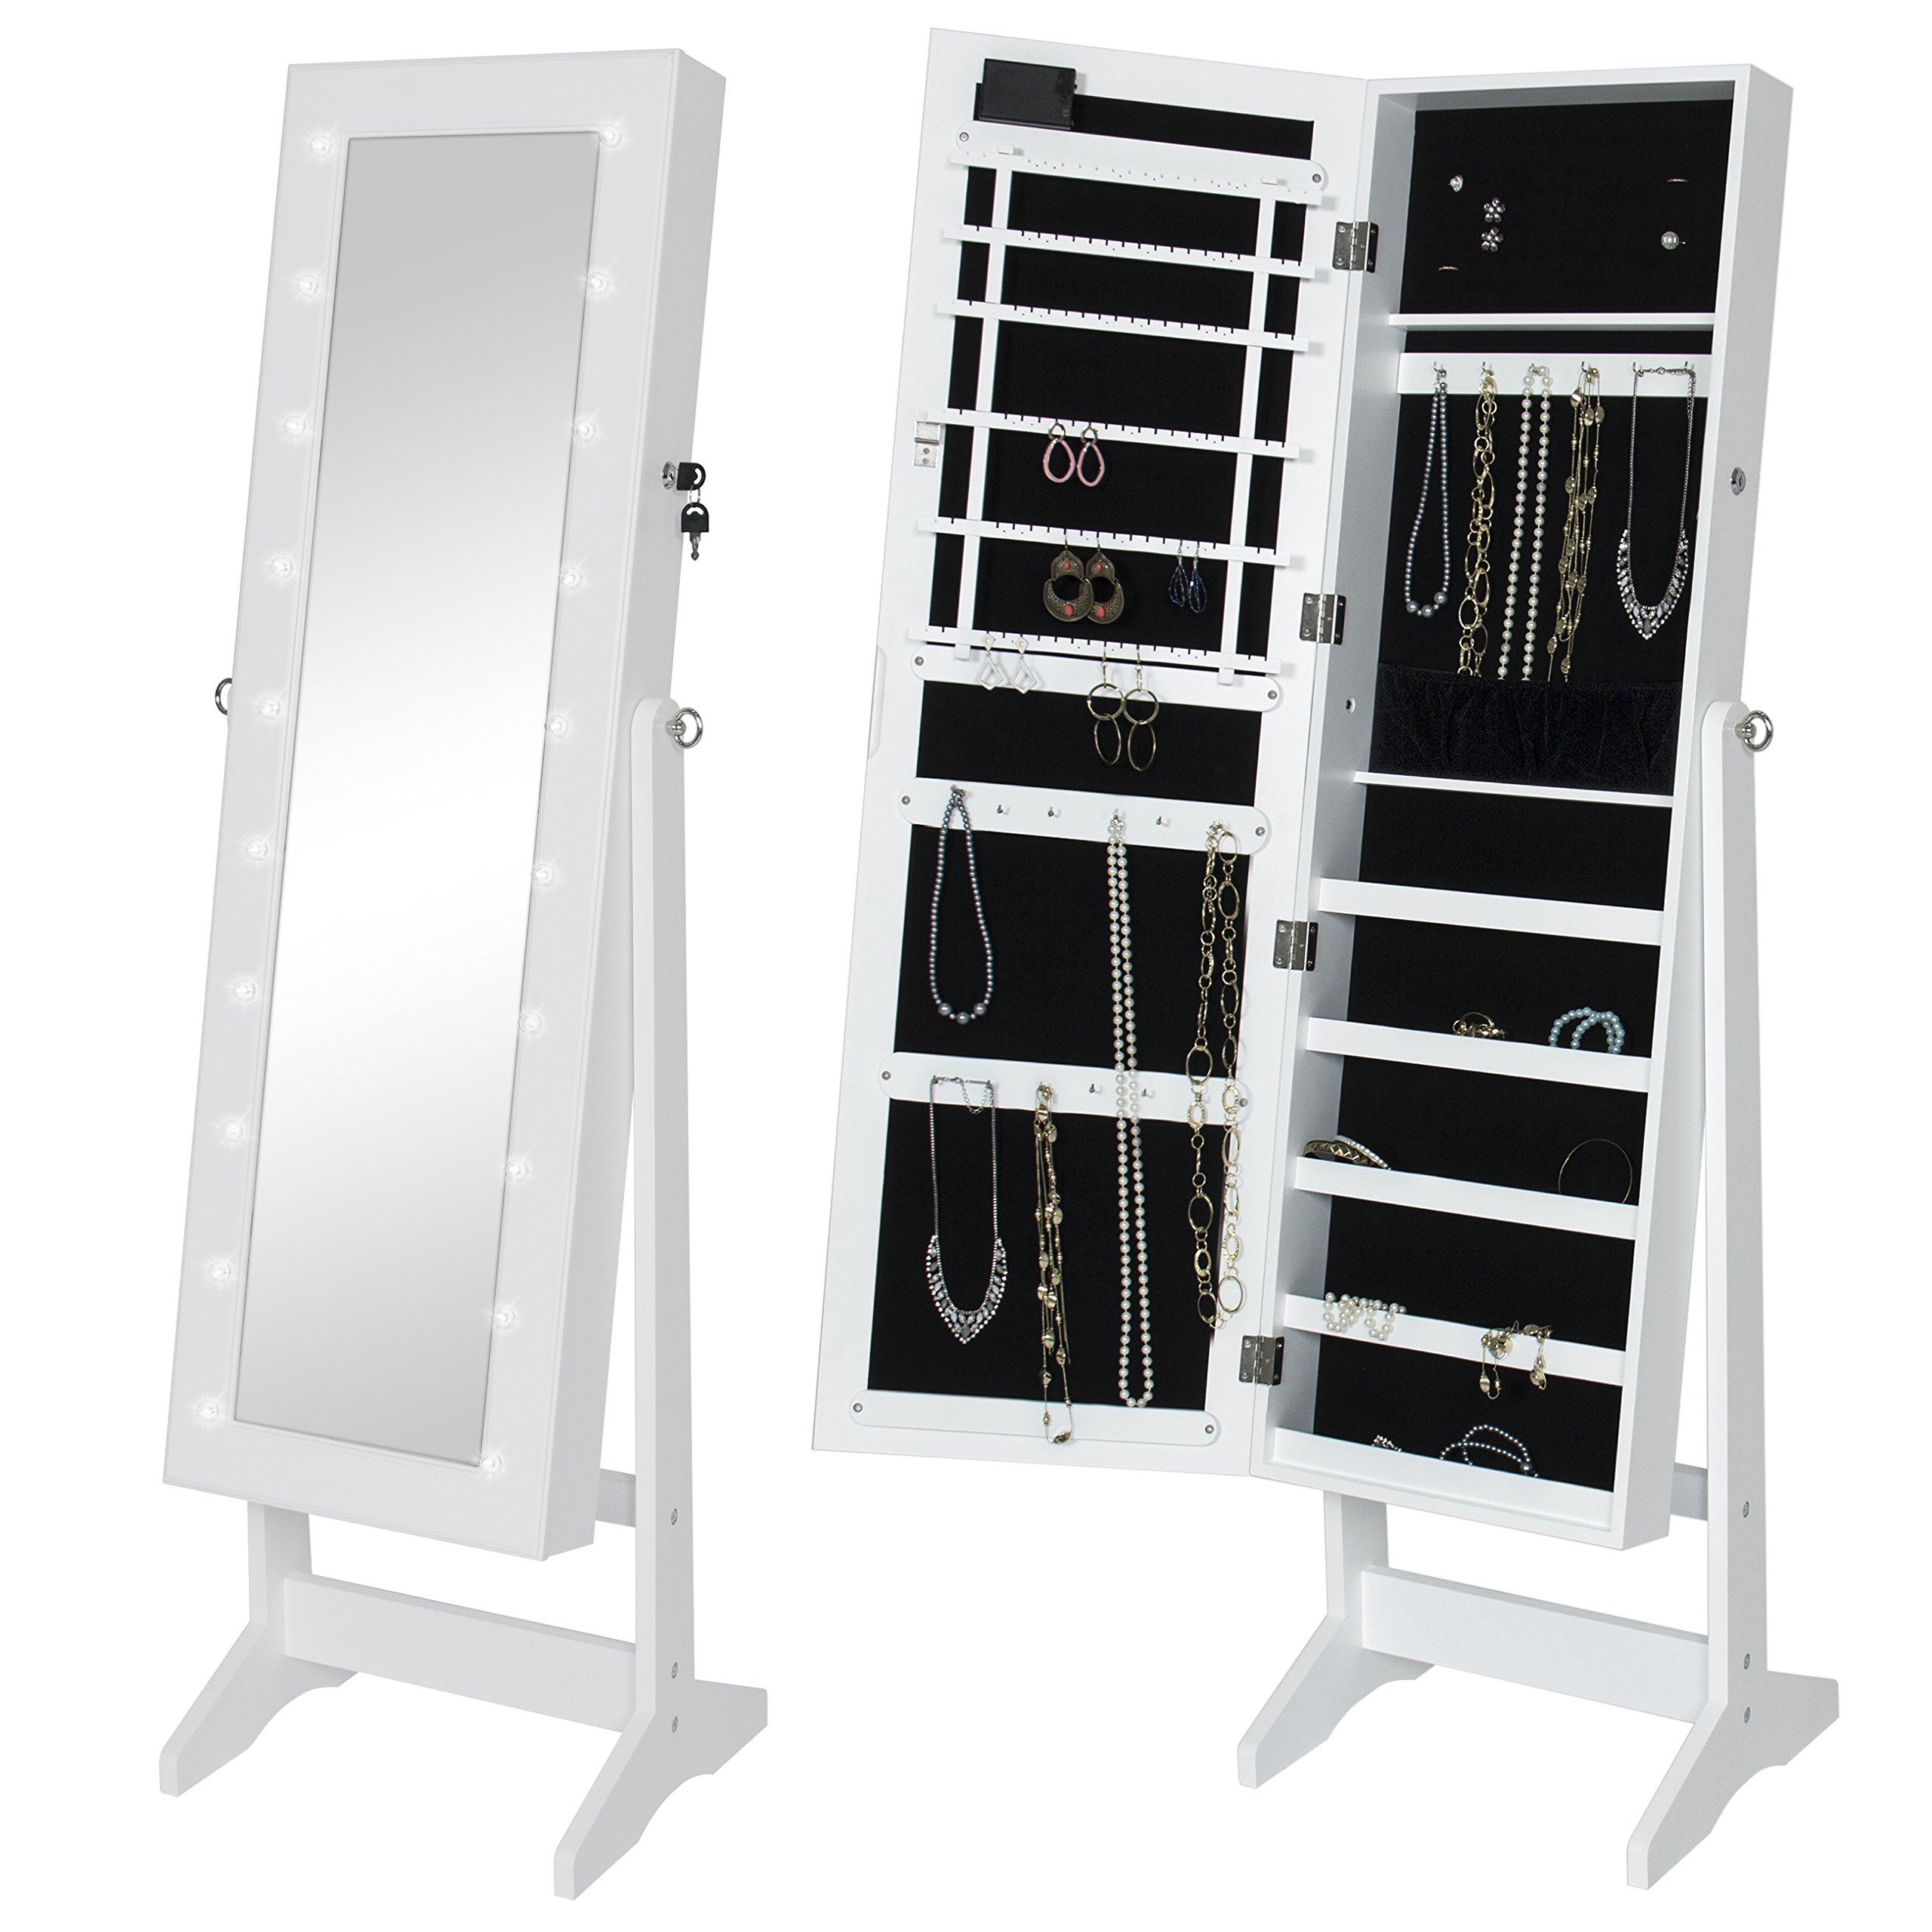 Best Choice Products LED Lighted Mirrored Home Decor Cabinet Armoire W/Stand- White